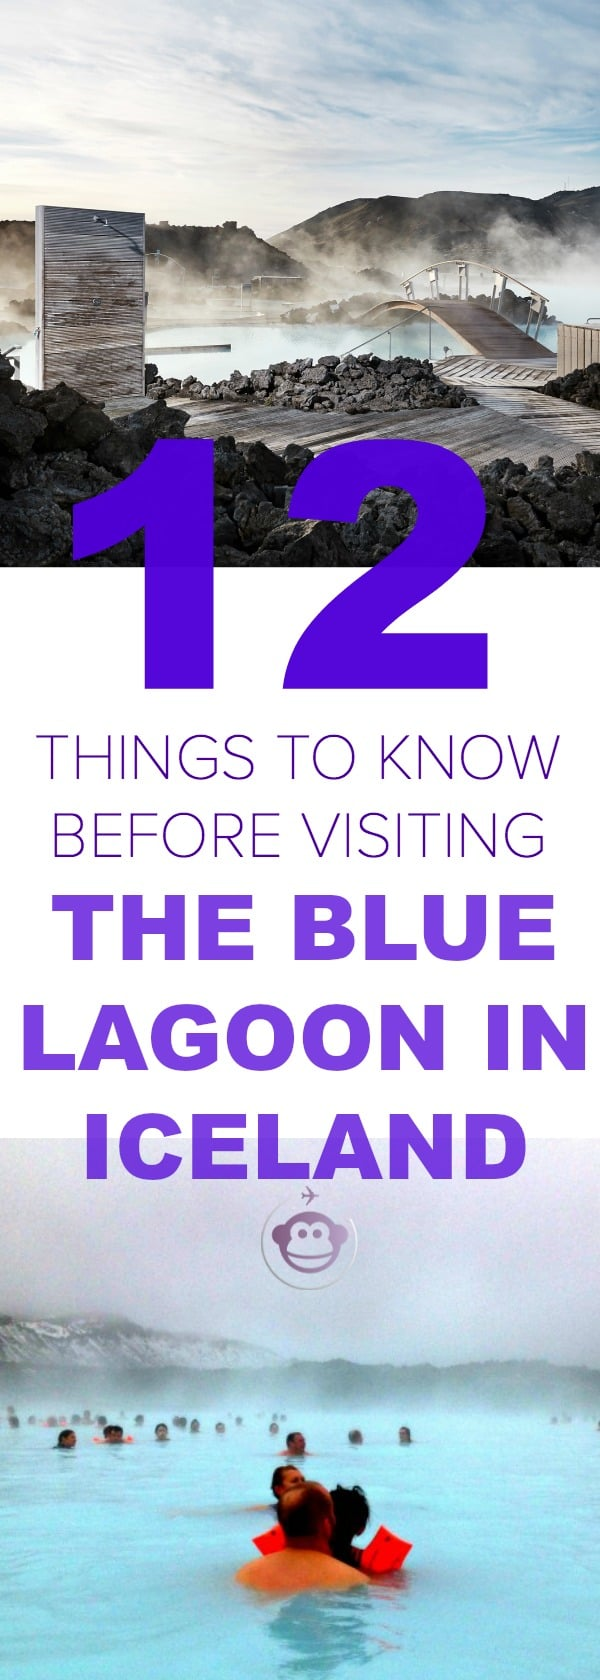 Things To Know Before Visiting The Blue Lagoon My Travel Monkey - 10 things to know about icelands blue lagoon